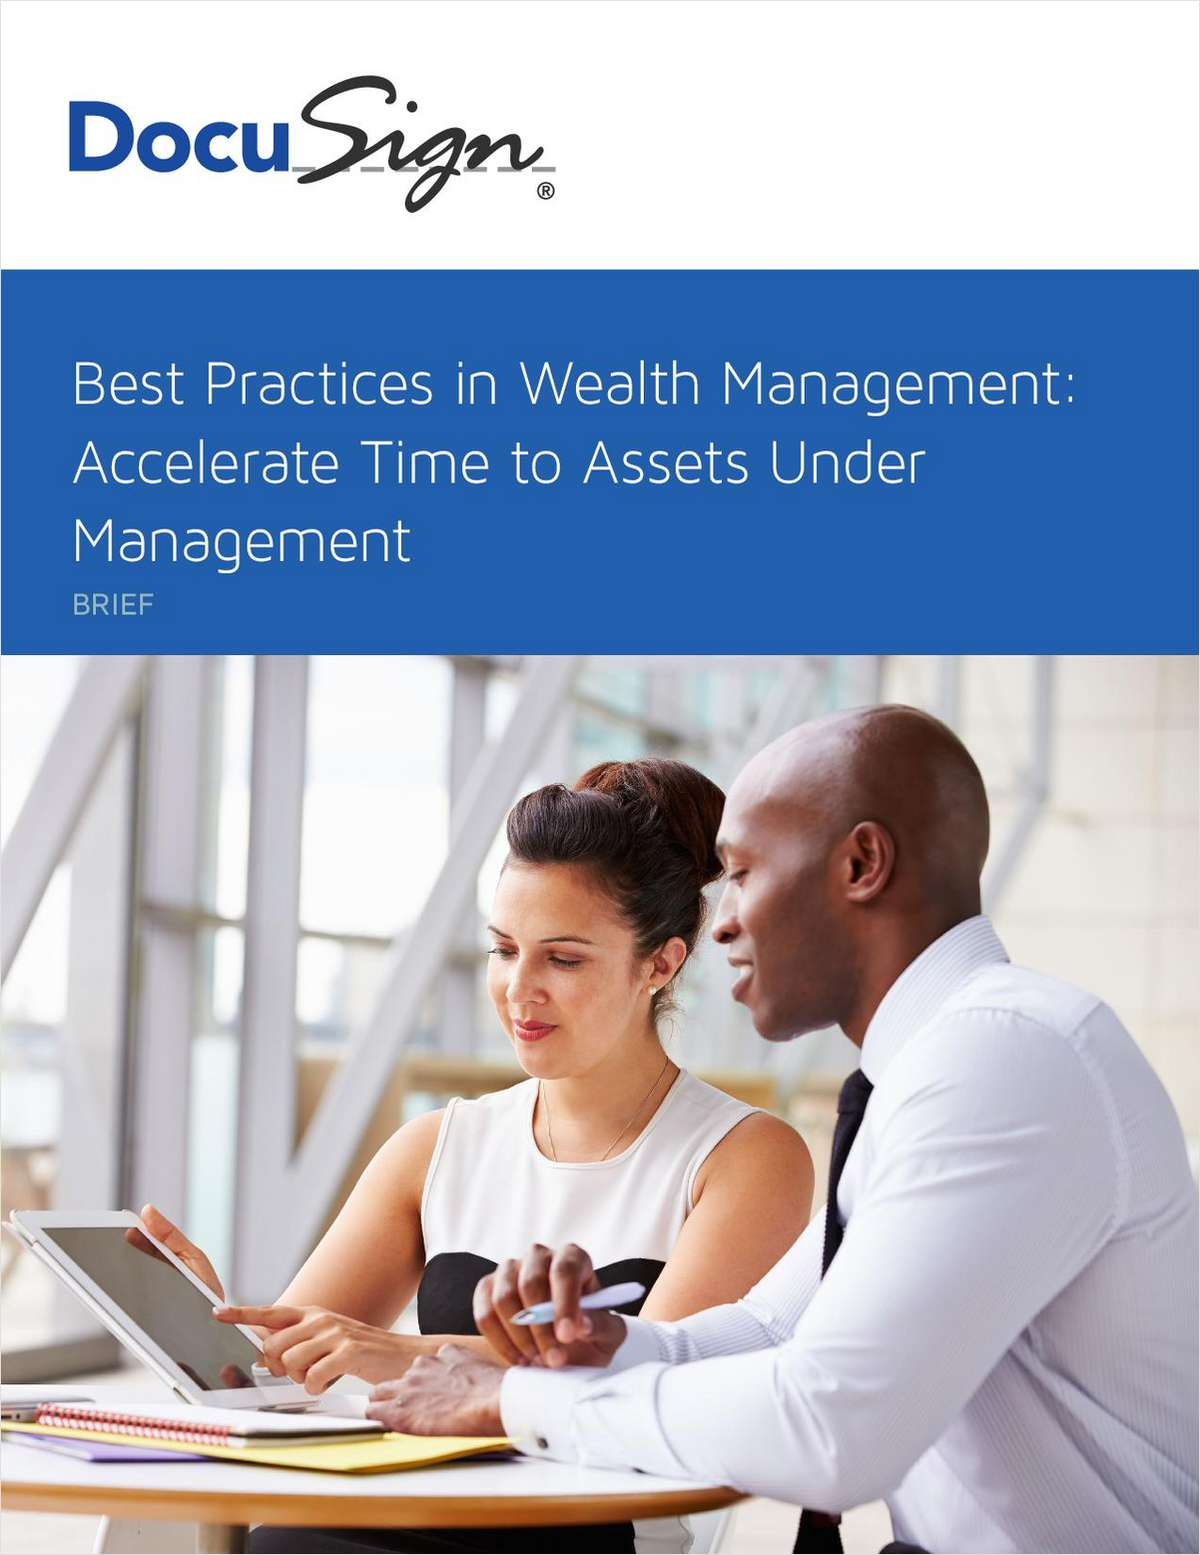 How to Accelerate Time to Assets Under Management & Reduce Costs